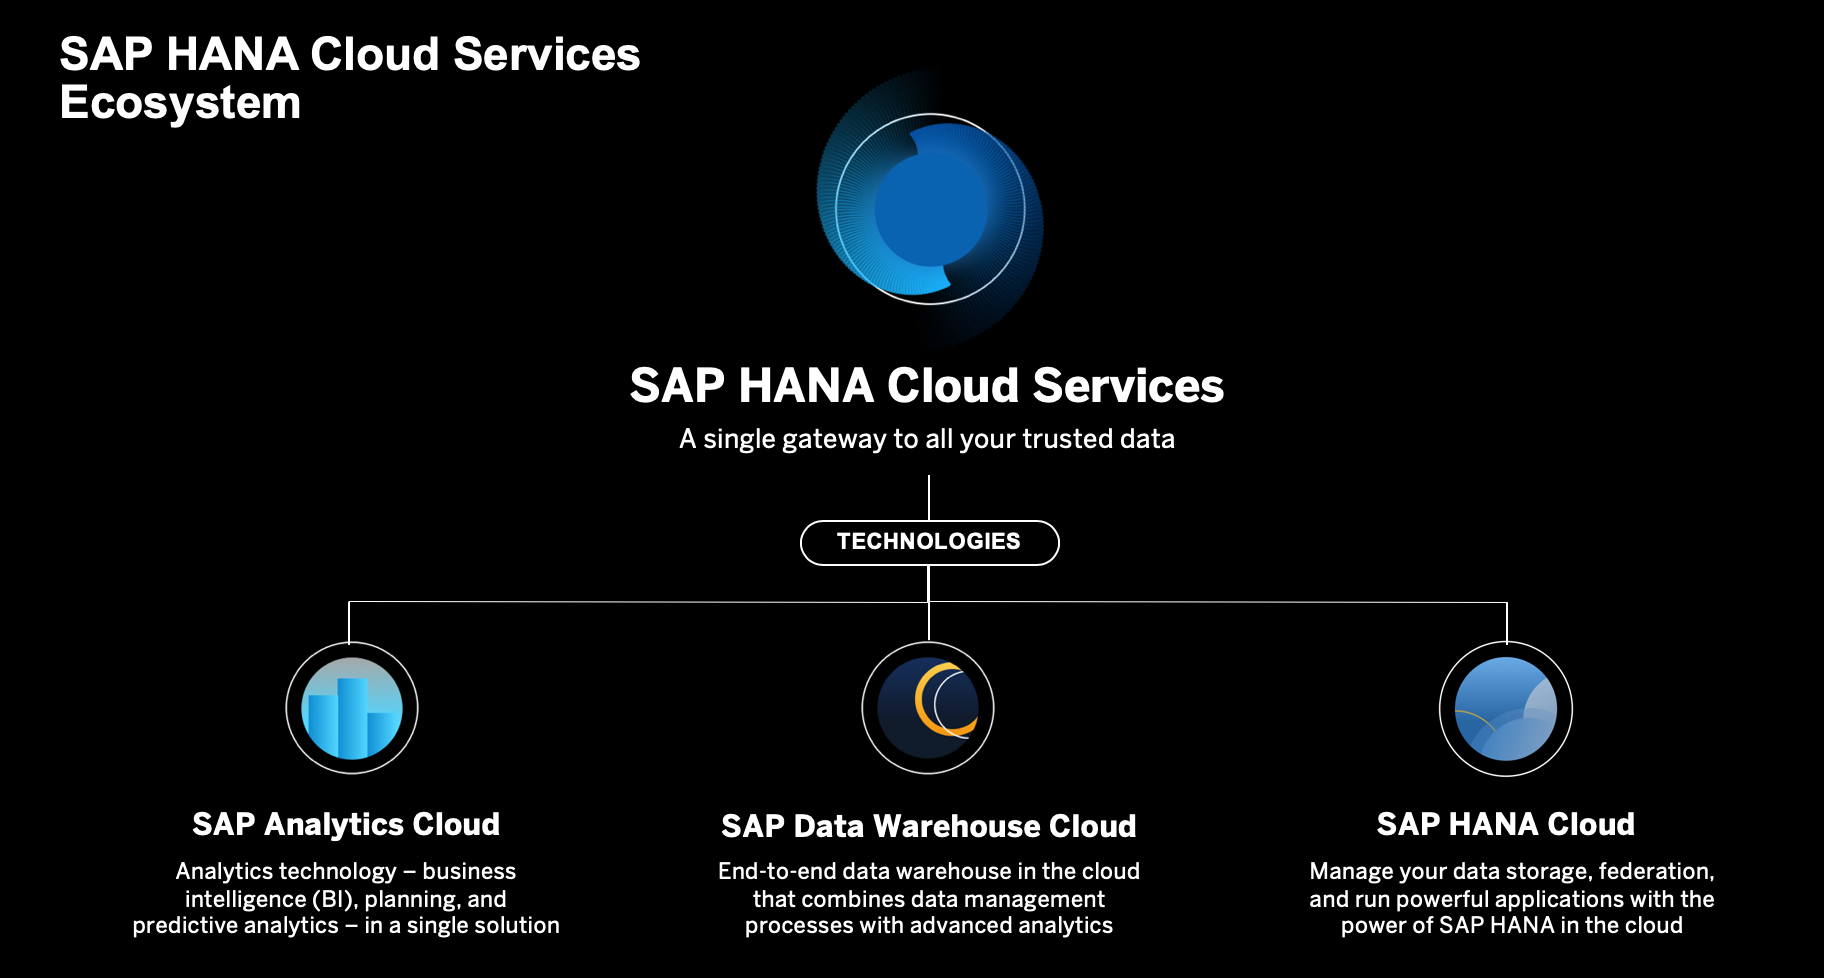 Source%3A%20https%3A//saphanajourney.com/data-warehouse-cloud/learning-article/sap-data-warehouse-cloud-overview-and-architecture-2/